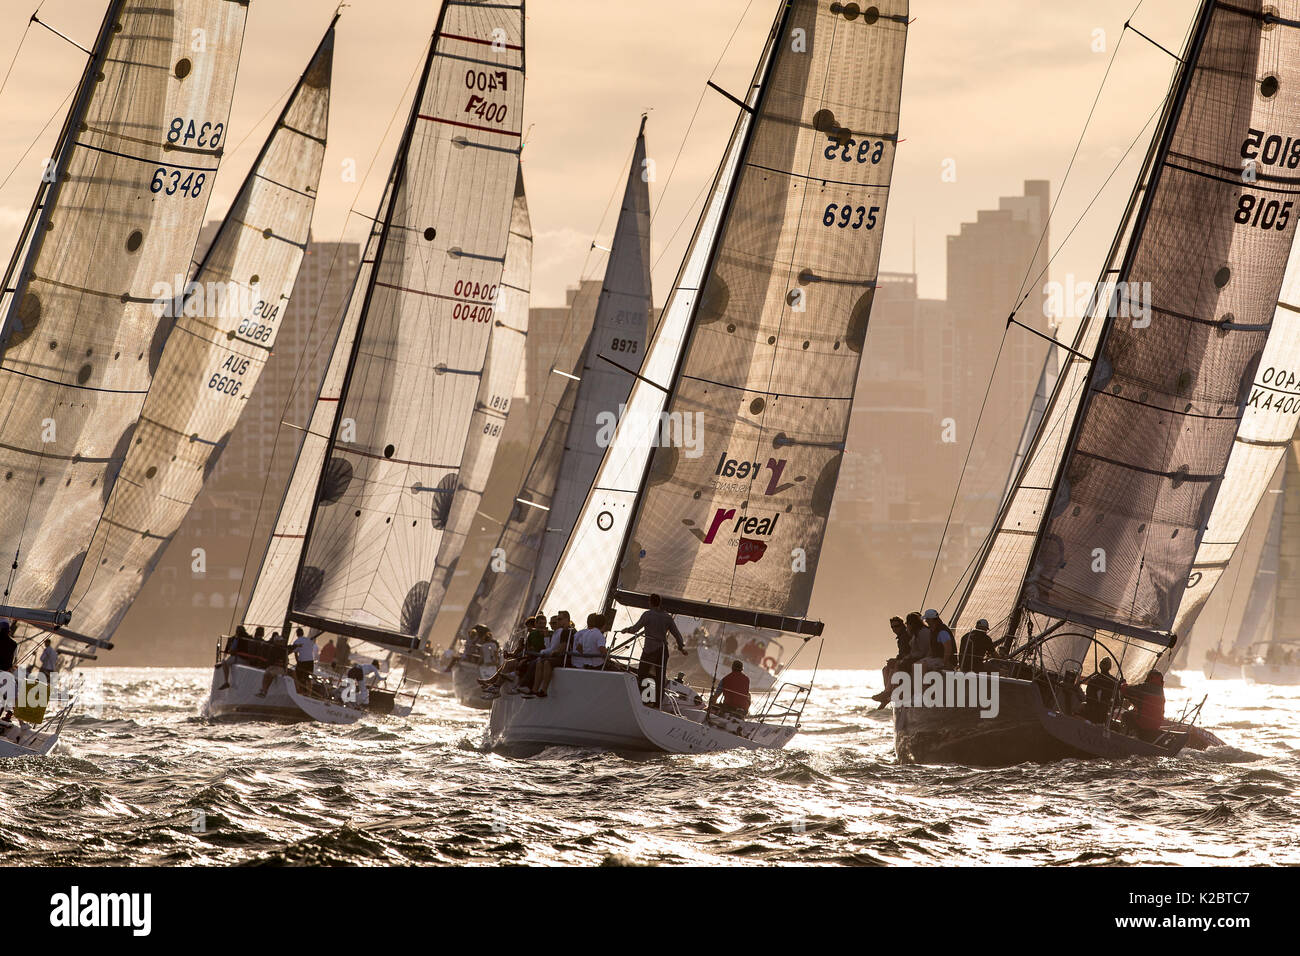 Yachts racing at dusk in the Sydney Harbor in Sydney, New South Wales, Australia, November 2012. All non-editorial uses must be cleared individually. - Stock Image